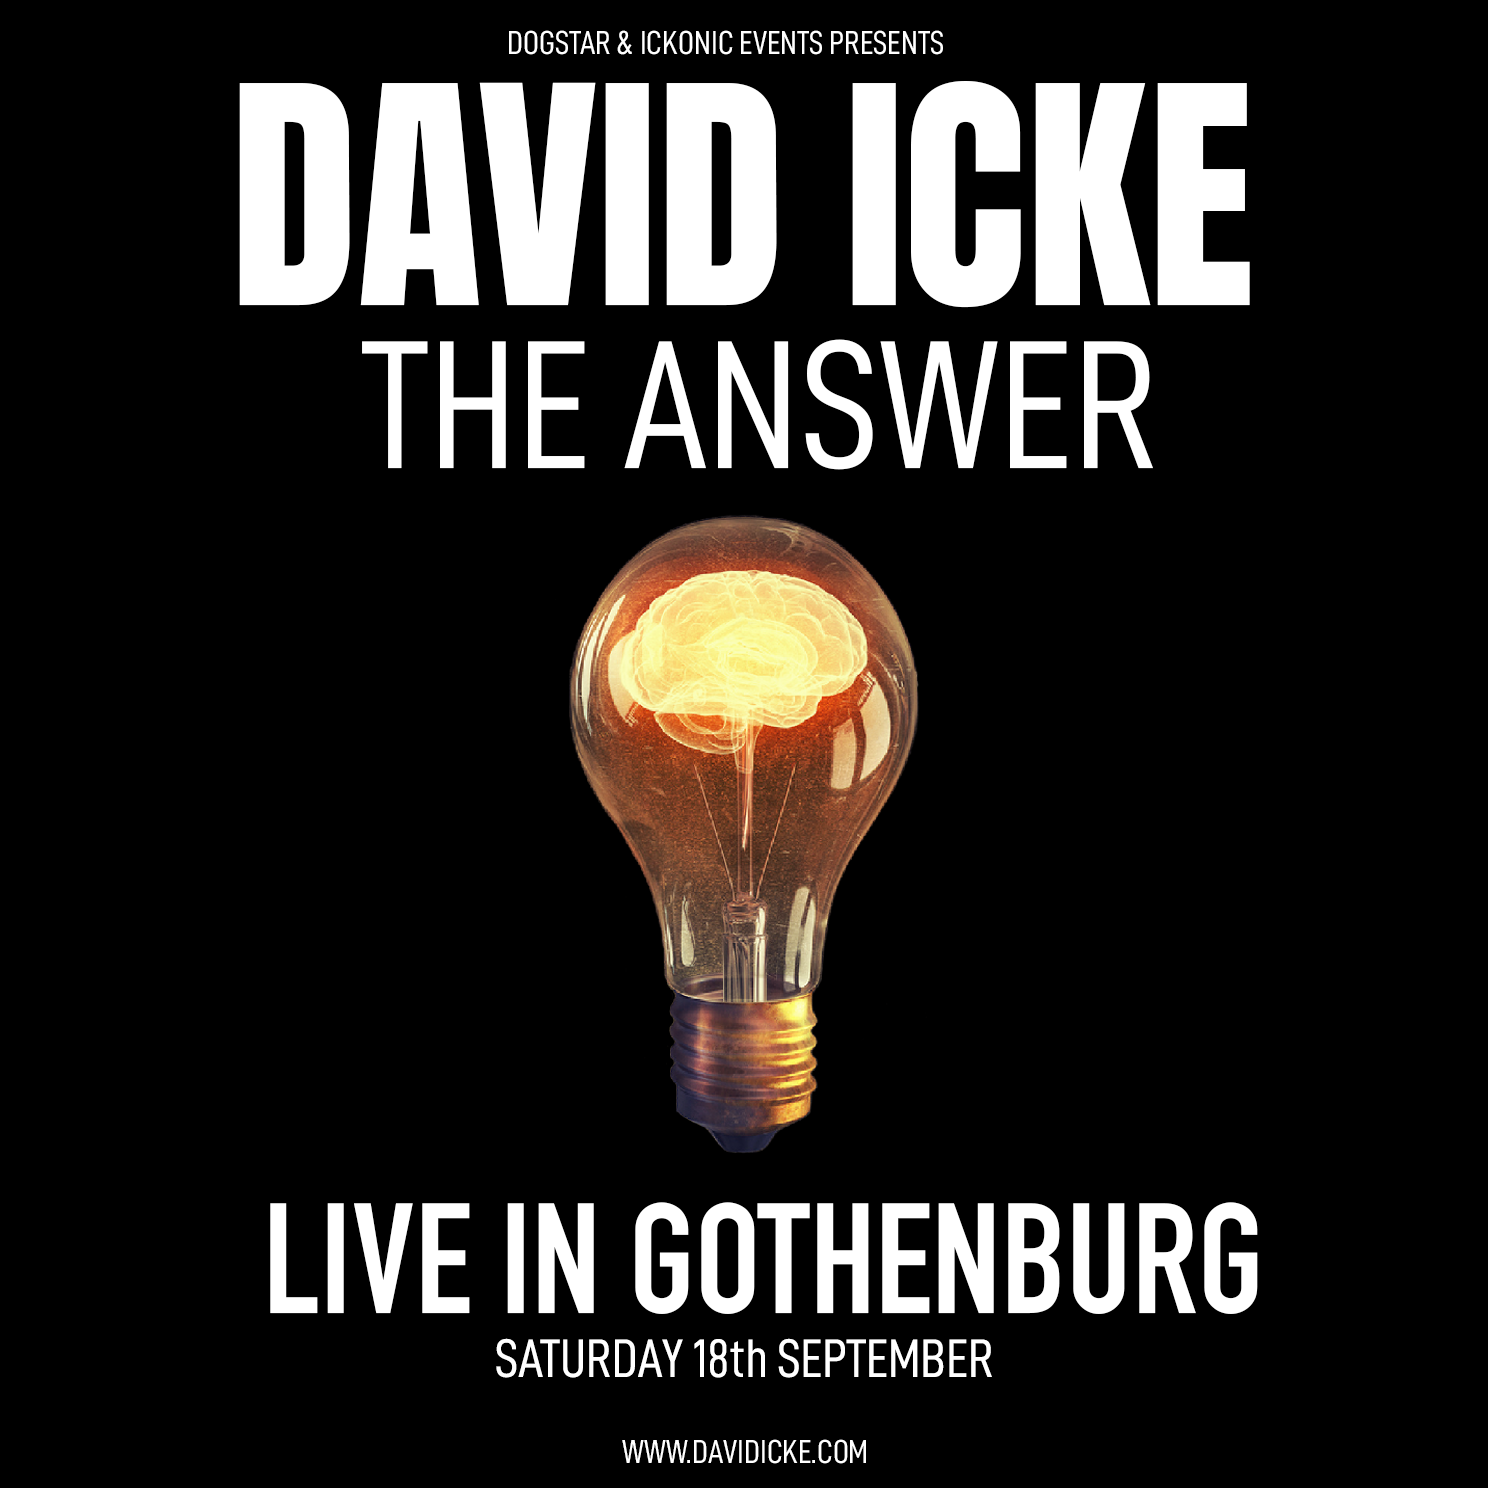 David Icke - Live In Gothenburg - The Answer - Saturday 18th September